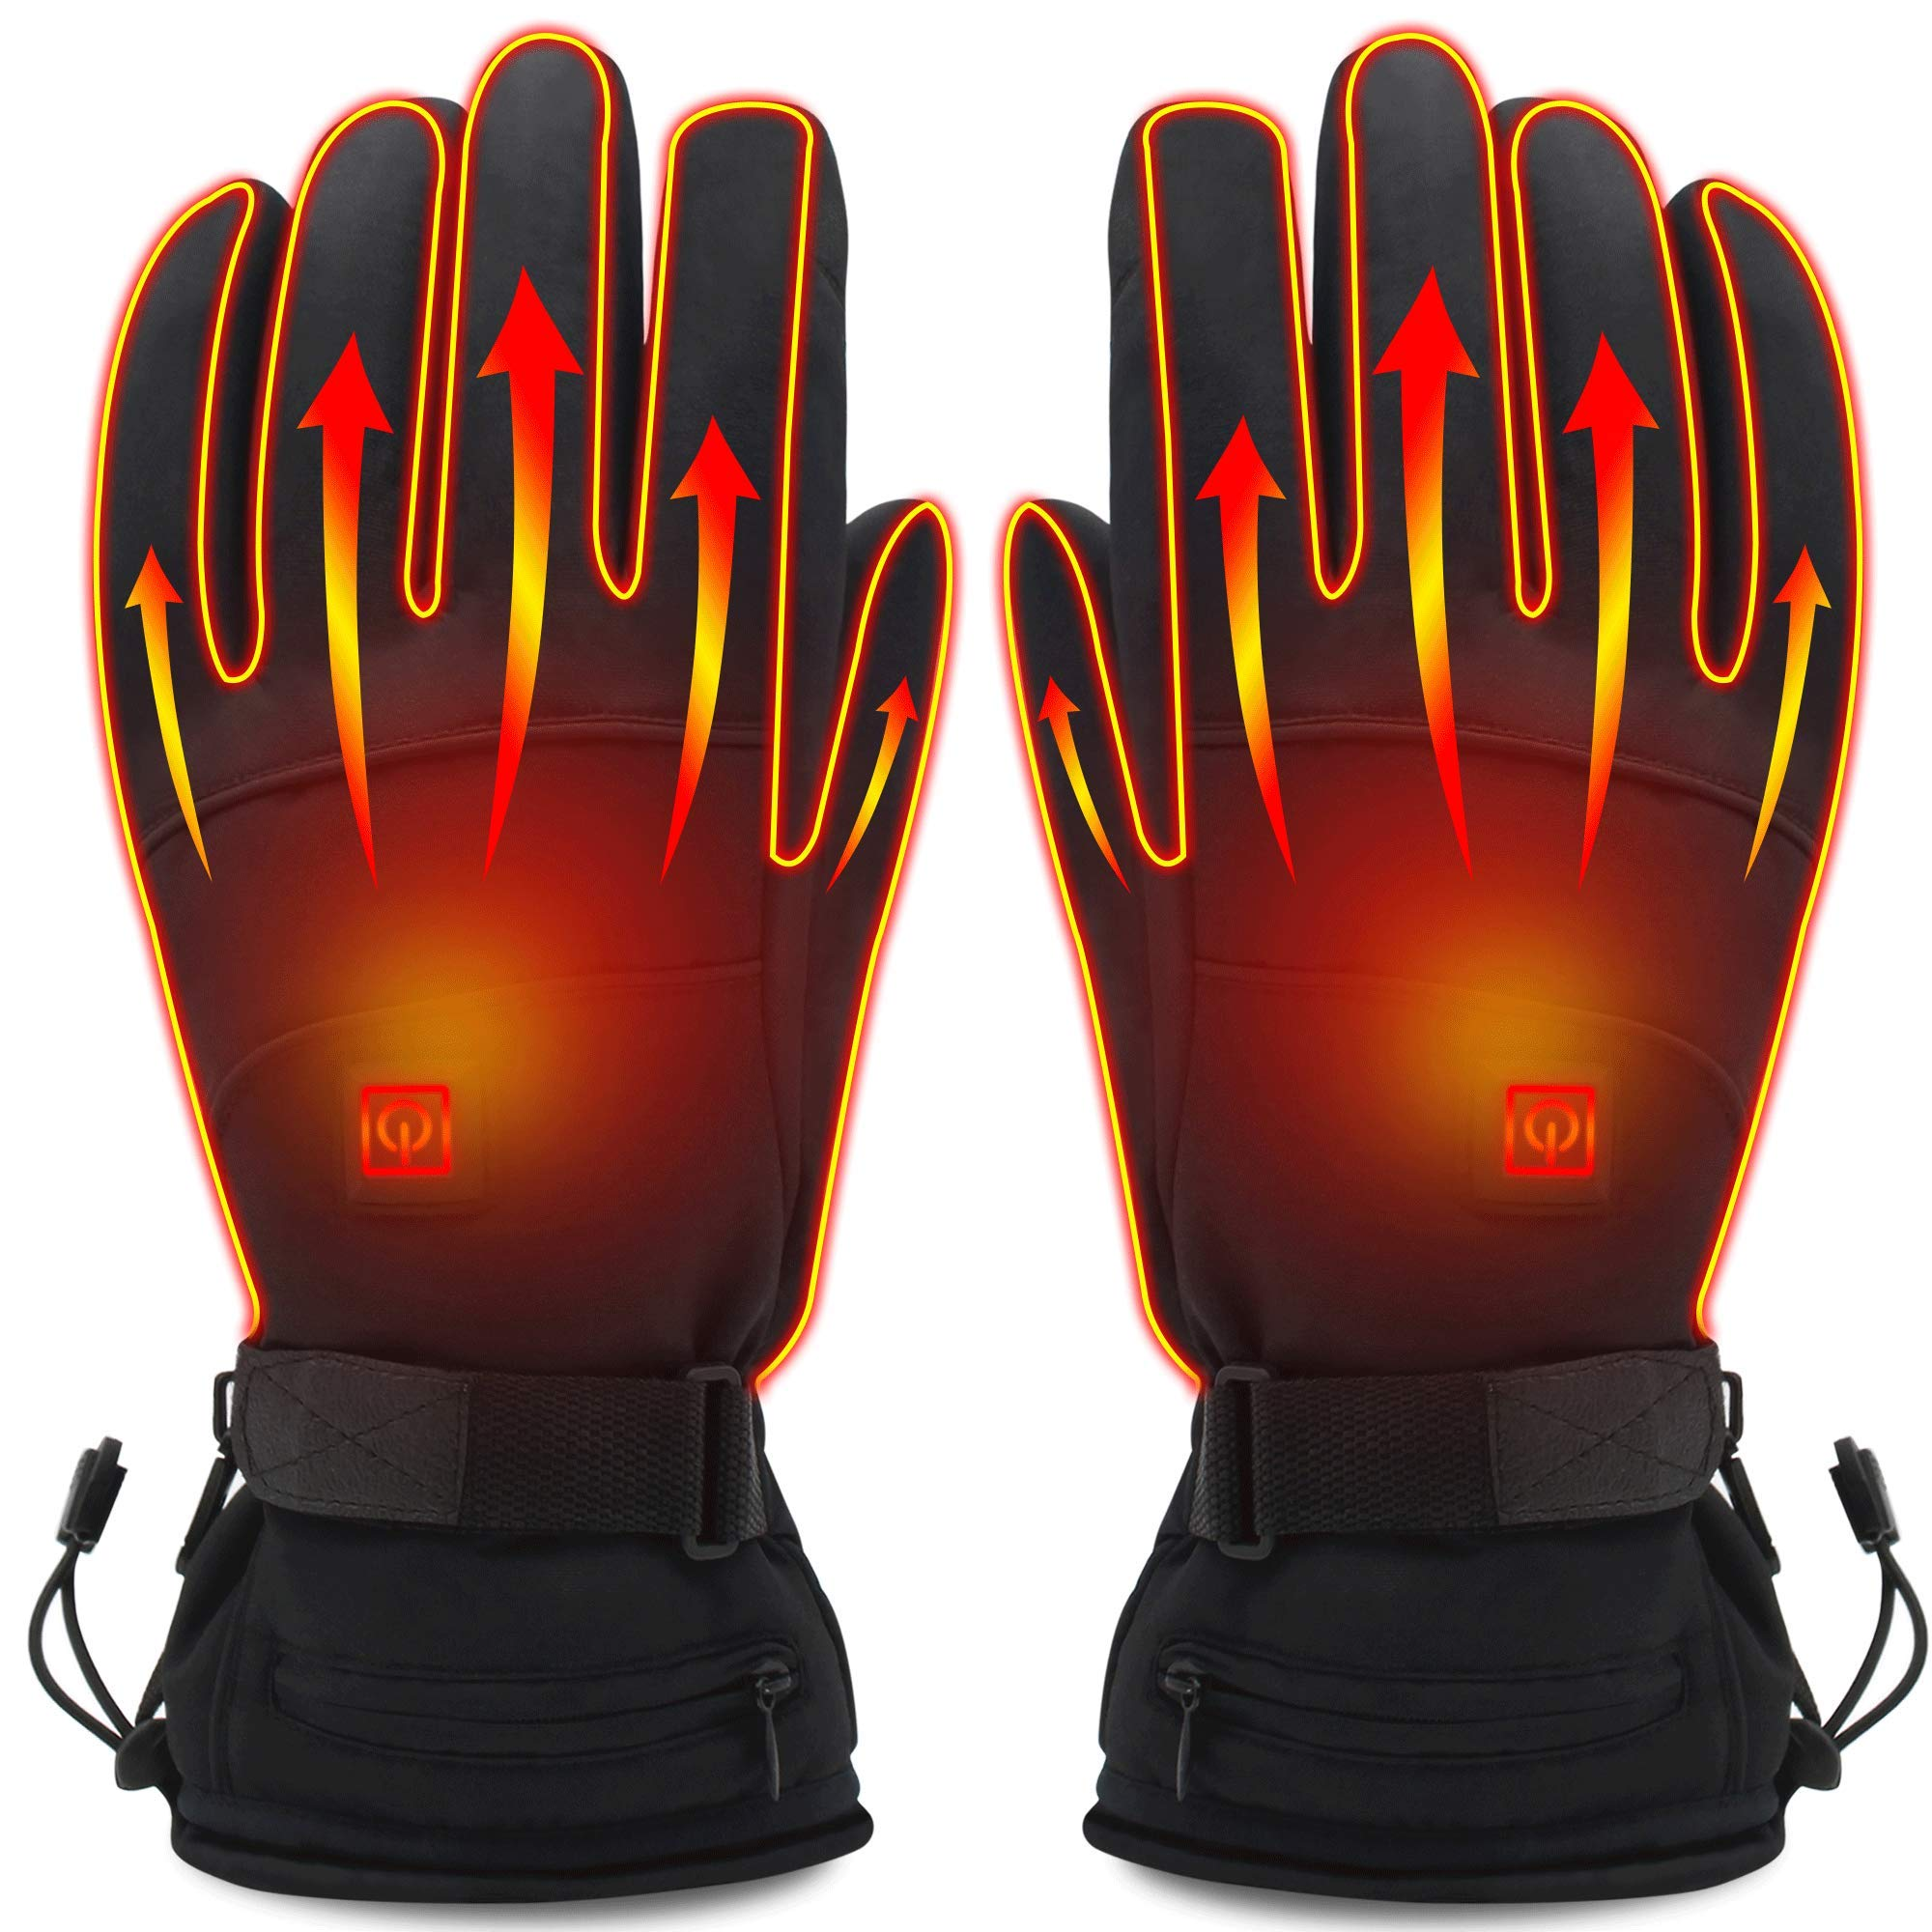 Rabbitroom Unisex Electric Heated Gloves Kit Winter Rechargeable Battery Heating Gloves Waterproof Warm Thermal Gloves for Outdoor Hiking Camping Skiing Arthritis Hand Warmer by Rabbitroom